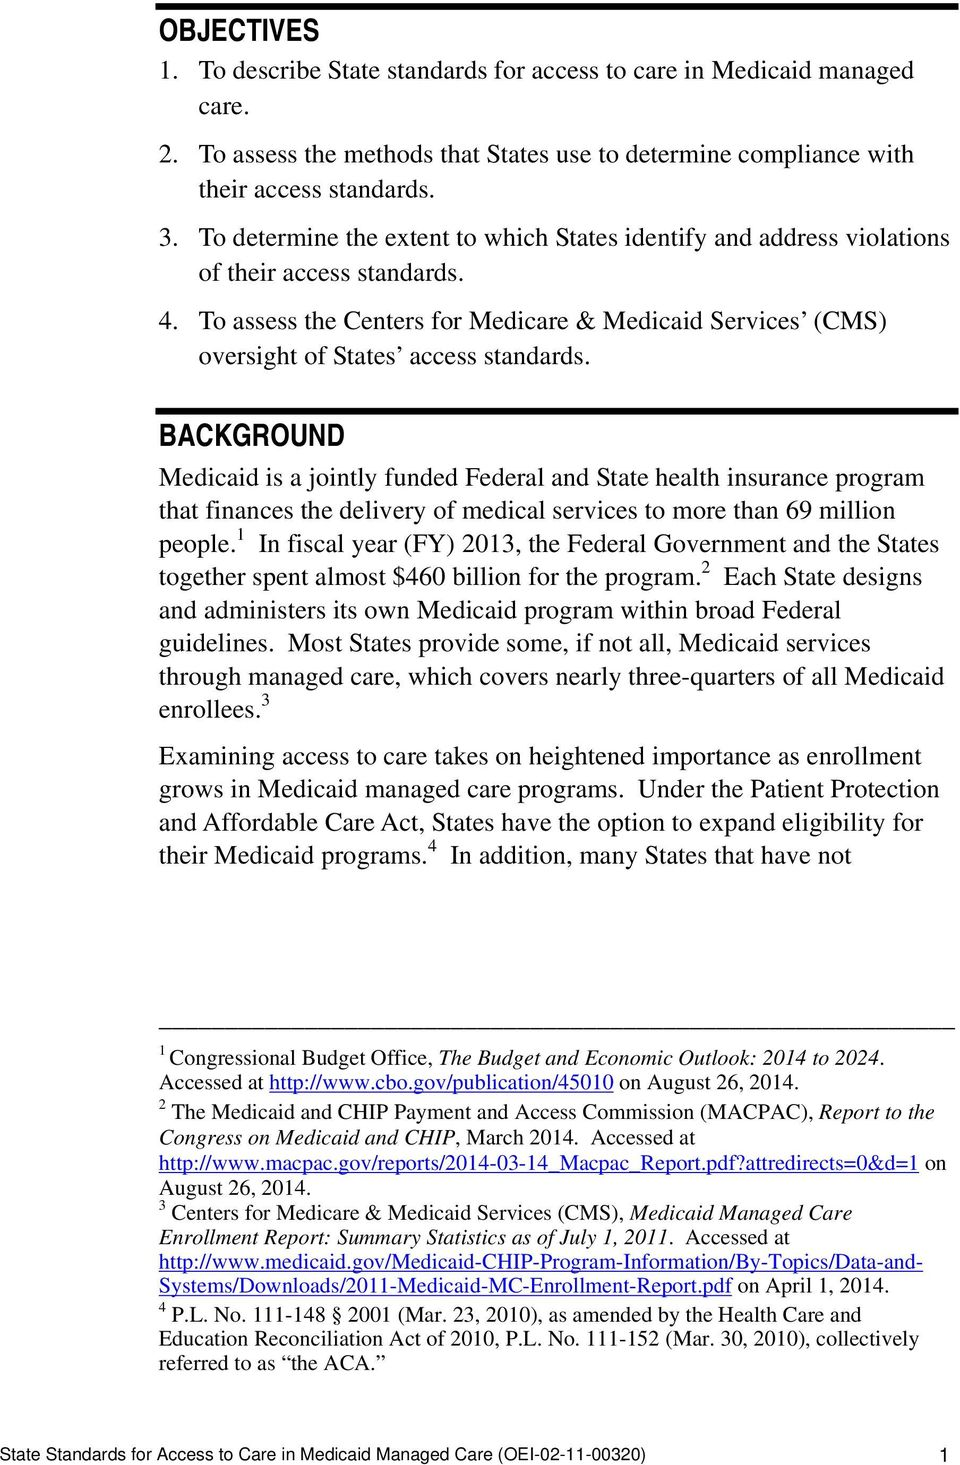 BACKGROUND Medicaid is a jointly funded Federal and State health insurance program that finances the delivery of medical services to more than 69 million people.